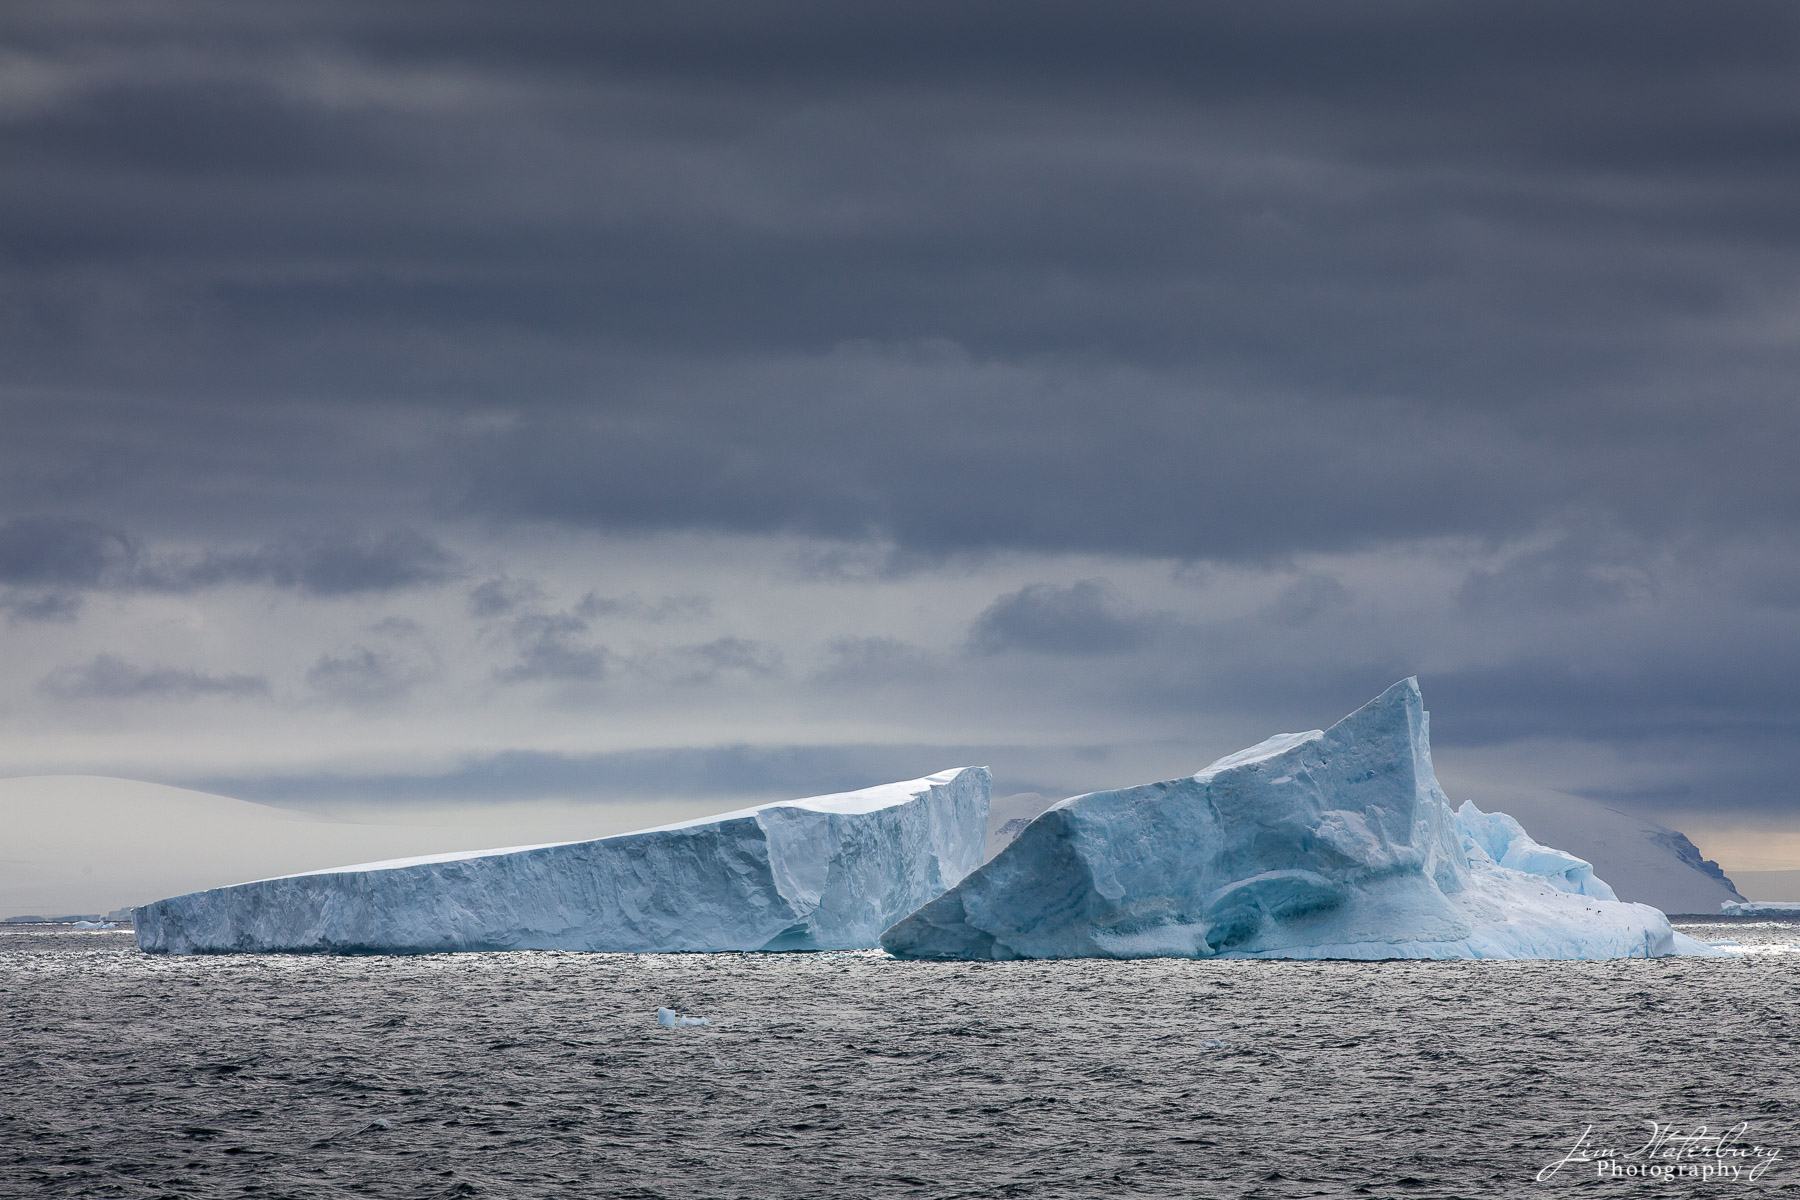 Image of a large iceberg that appears to have broken in two and is now floating in the Antarctic Sound.